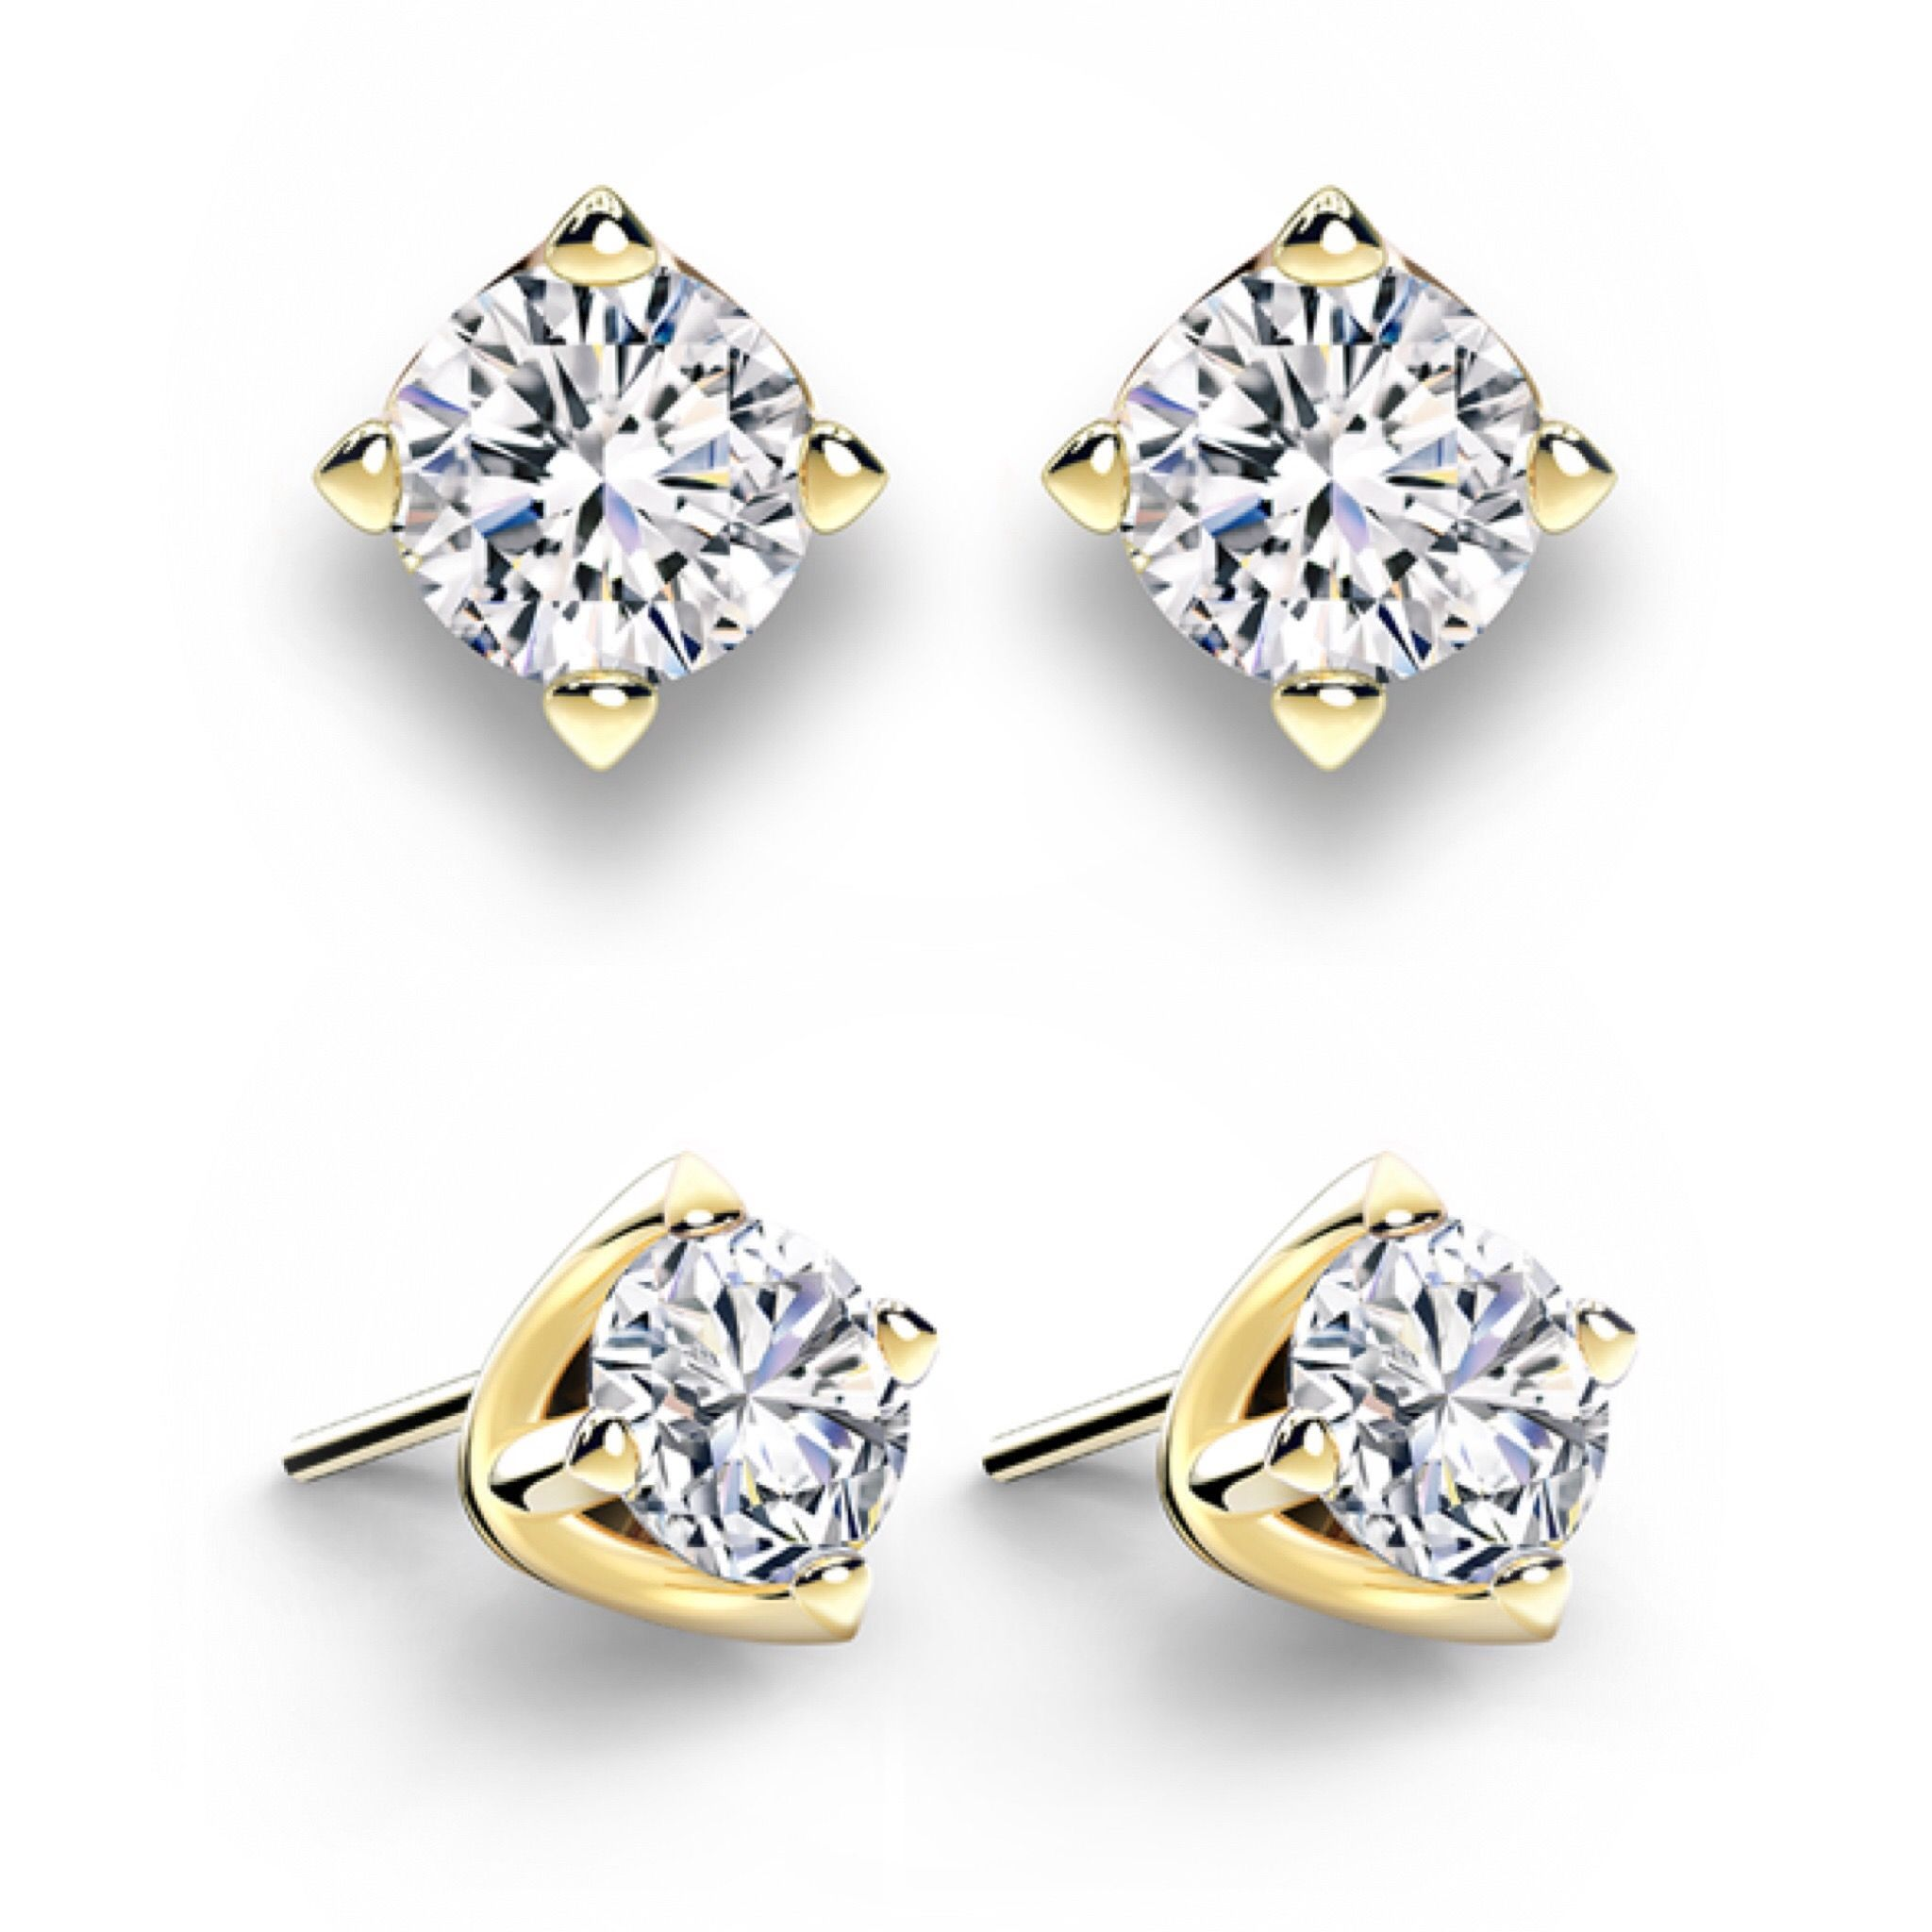 watches free earrings diamond tdw shipping round today product jewelry solitaire finesque overstock stud